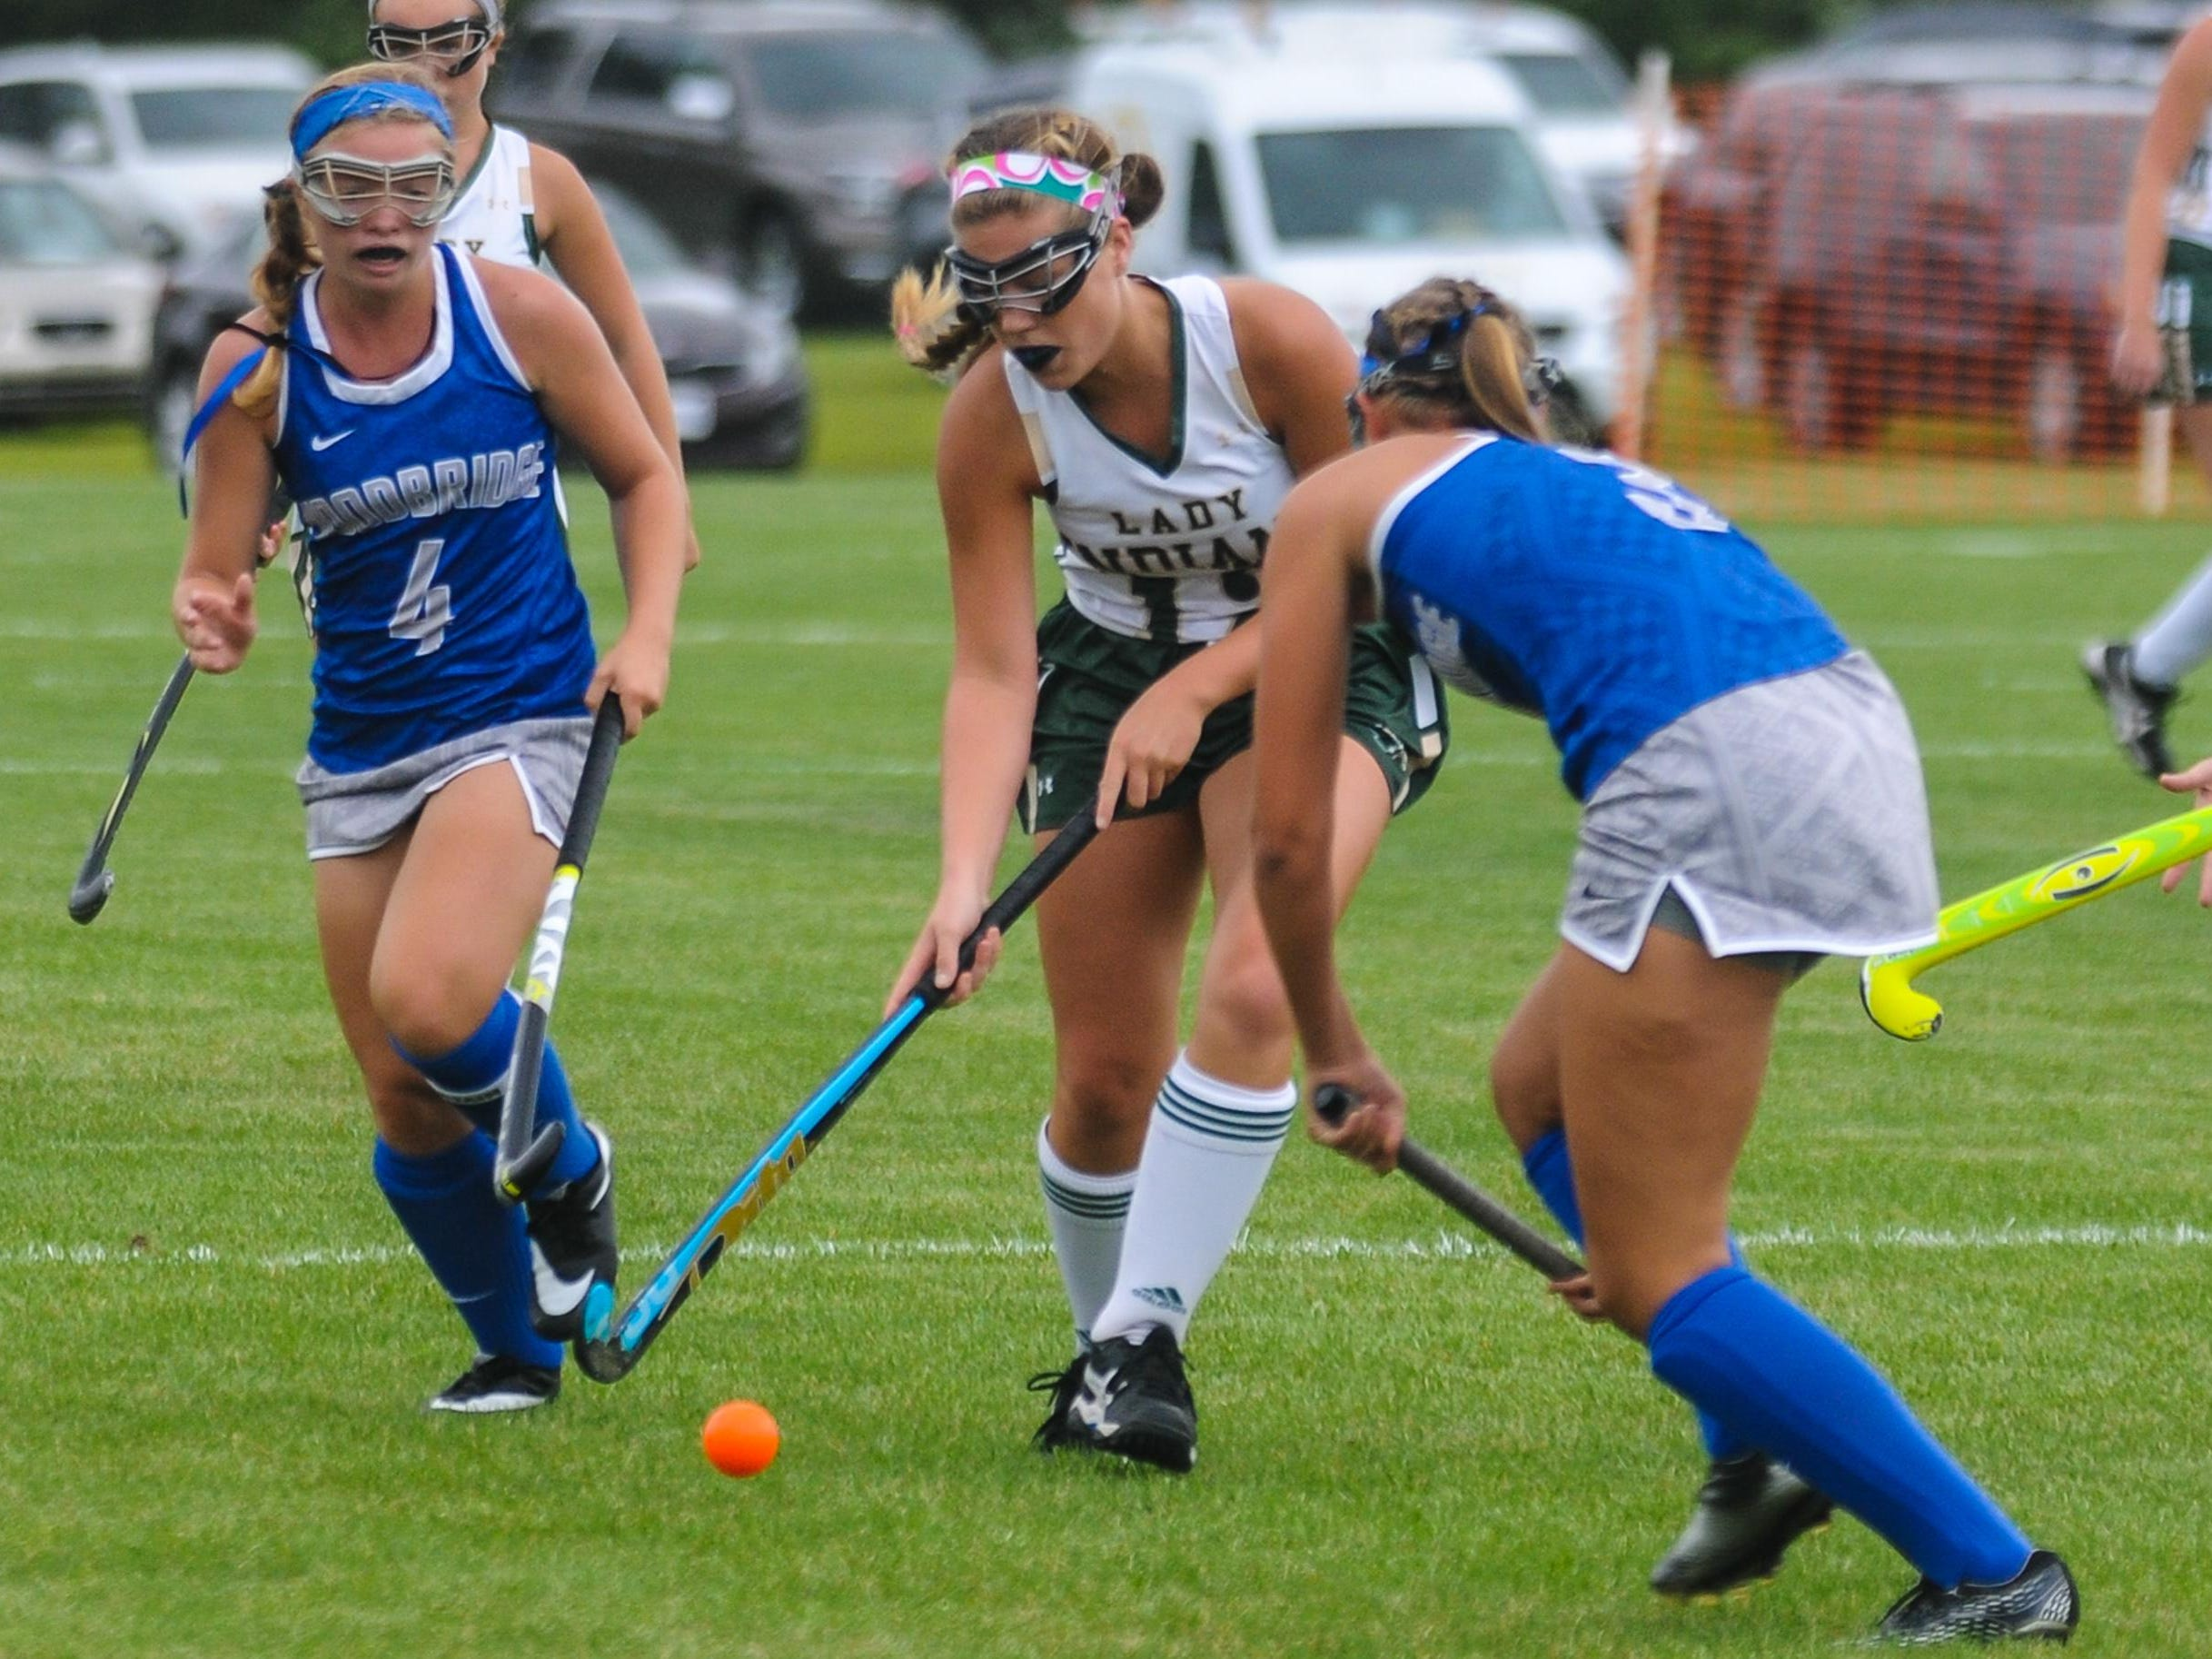 Indian River's Emma-Lee Merrickfights through the Woodbridge defense on Tuesday afternoon in Dagsboro.